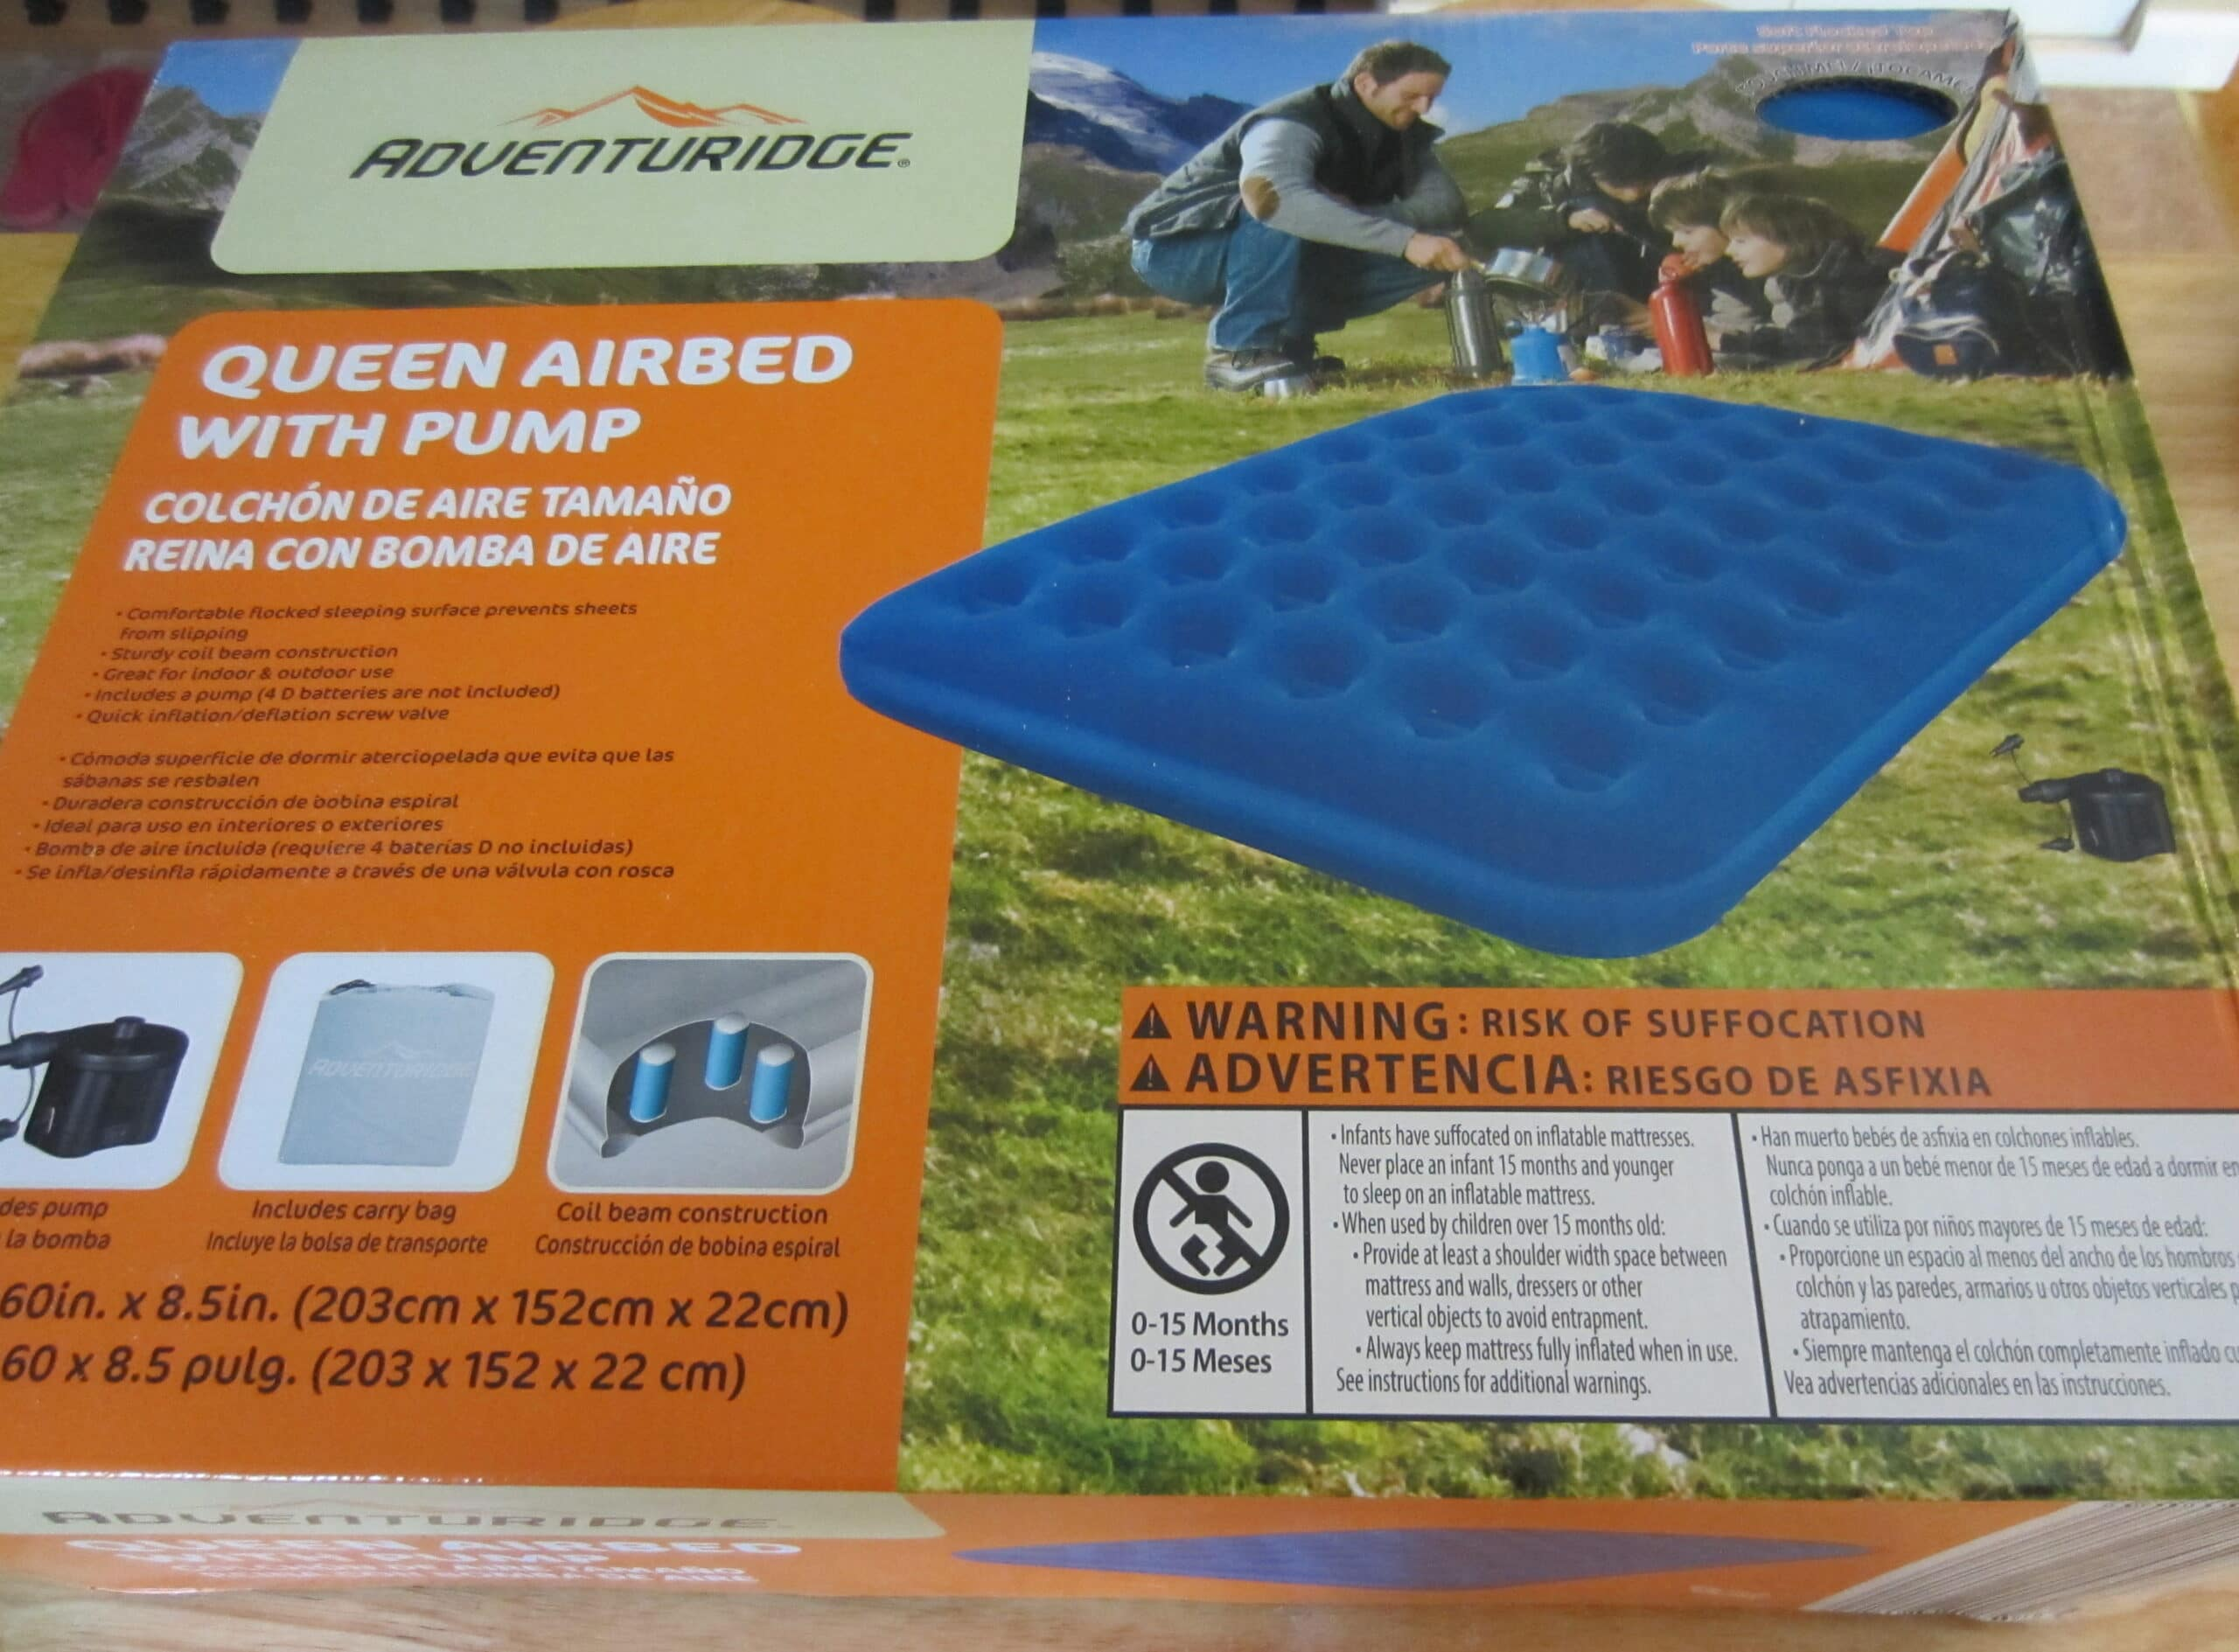 Queen Air Mattress Cot Adventuridge Queen Airbed With Pump Aldi Reviewer